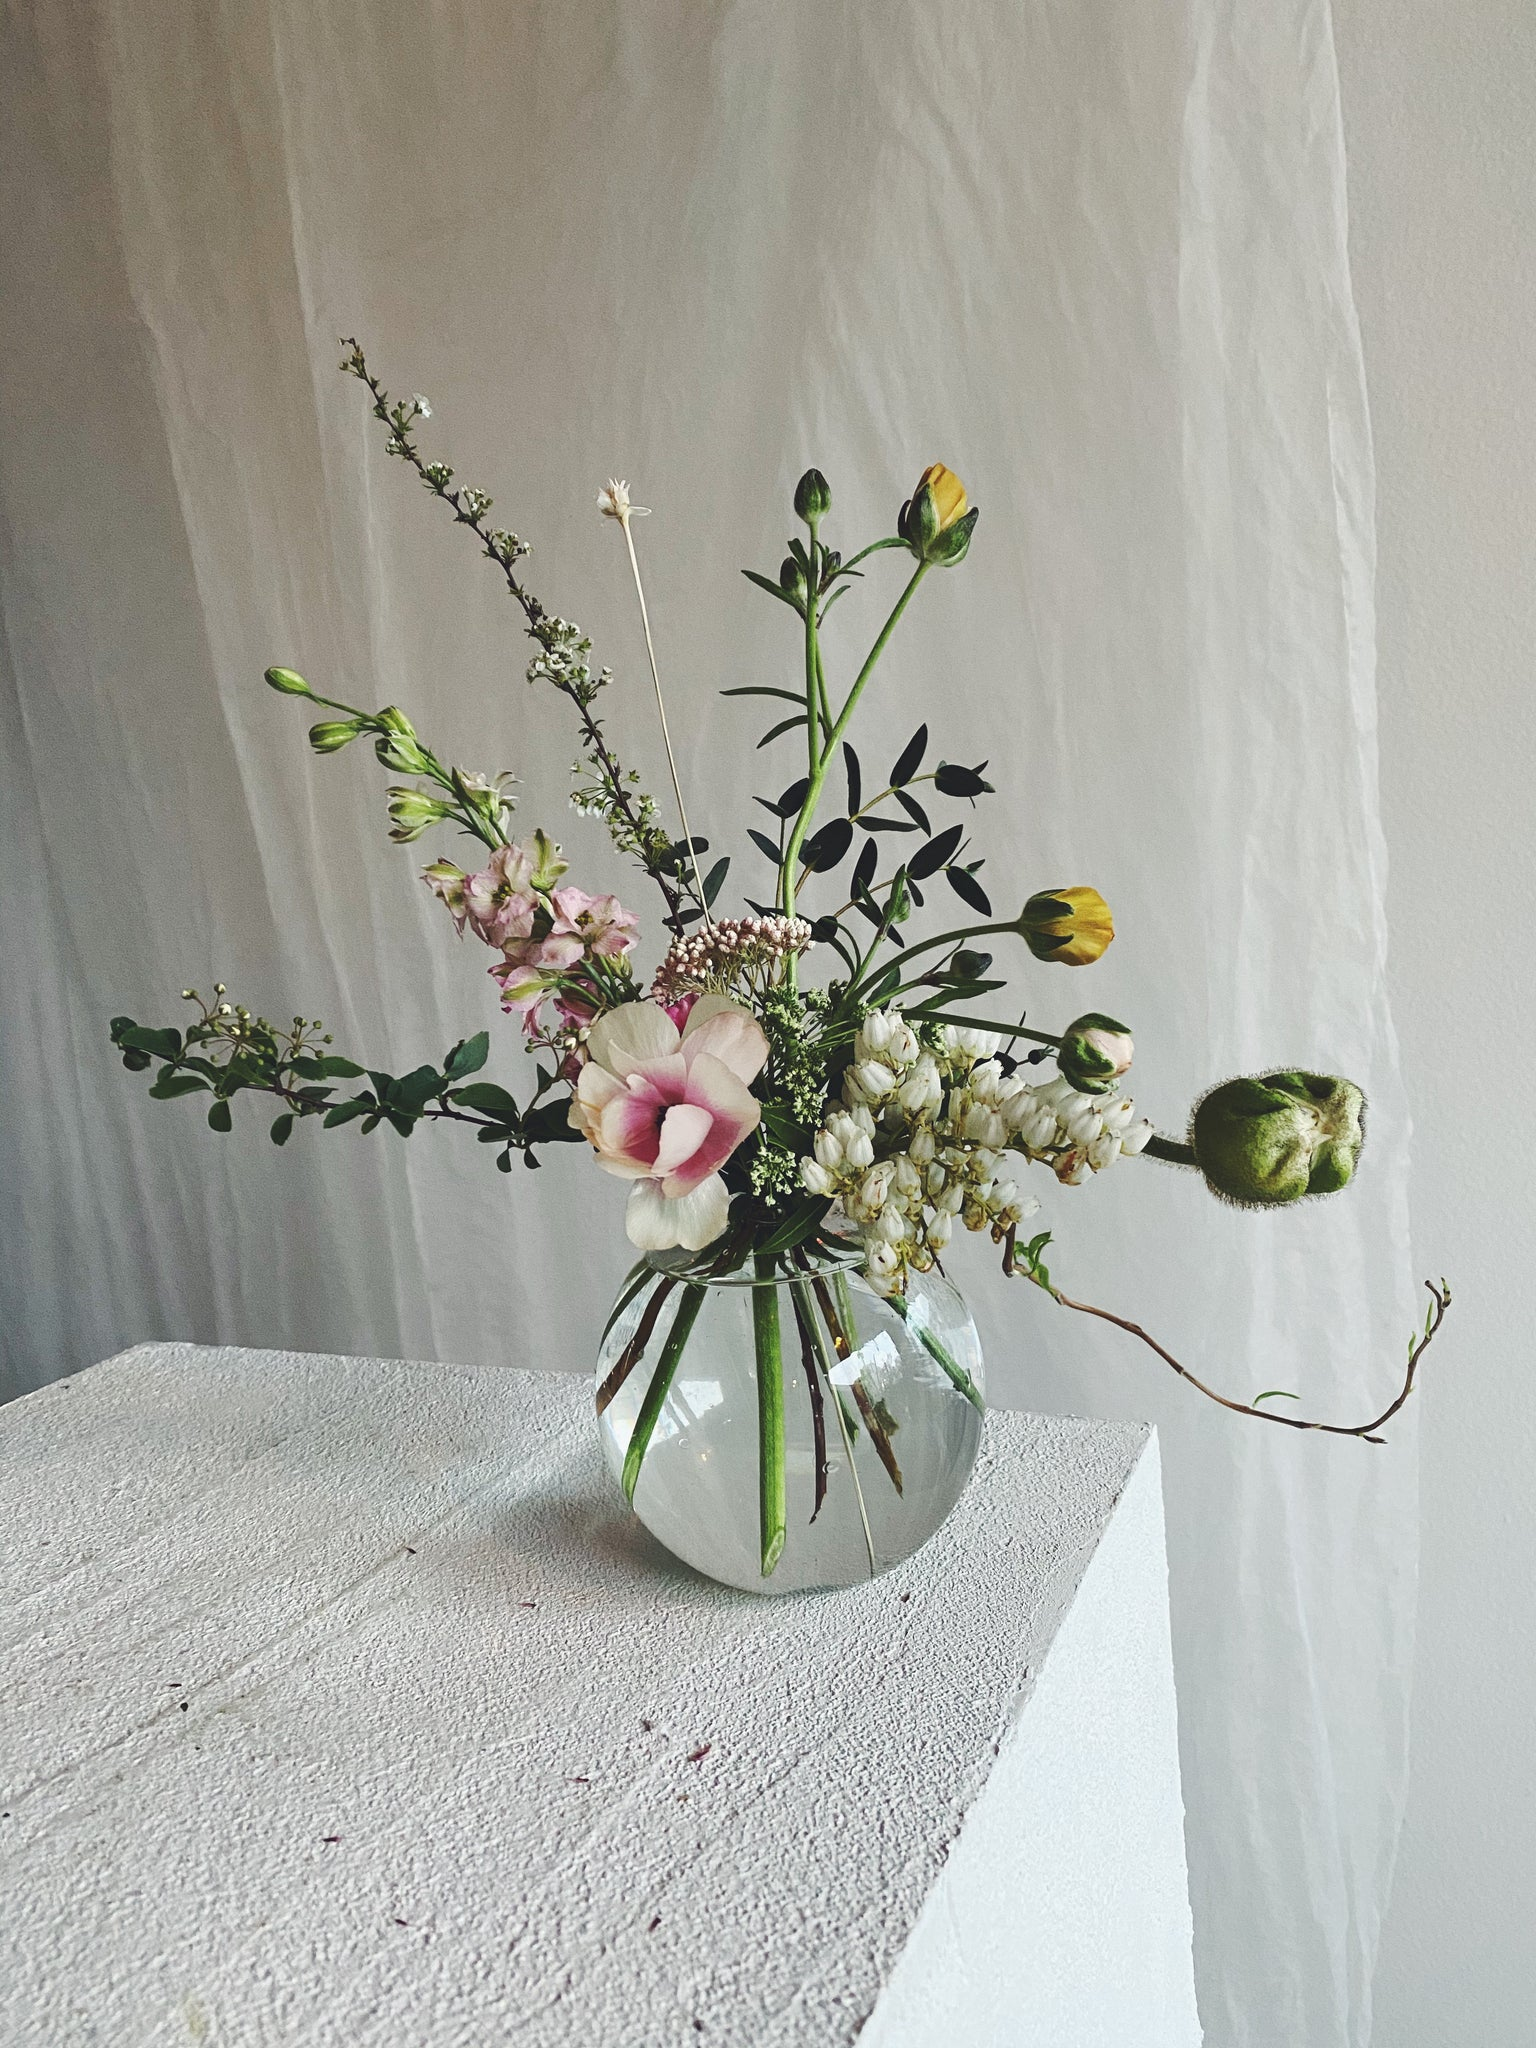 Goodbeast Round Glass Vase with Flowers